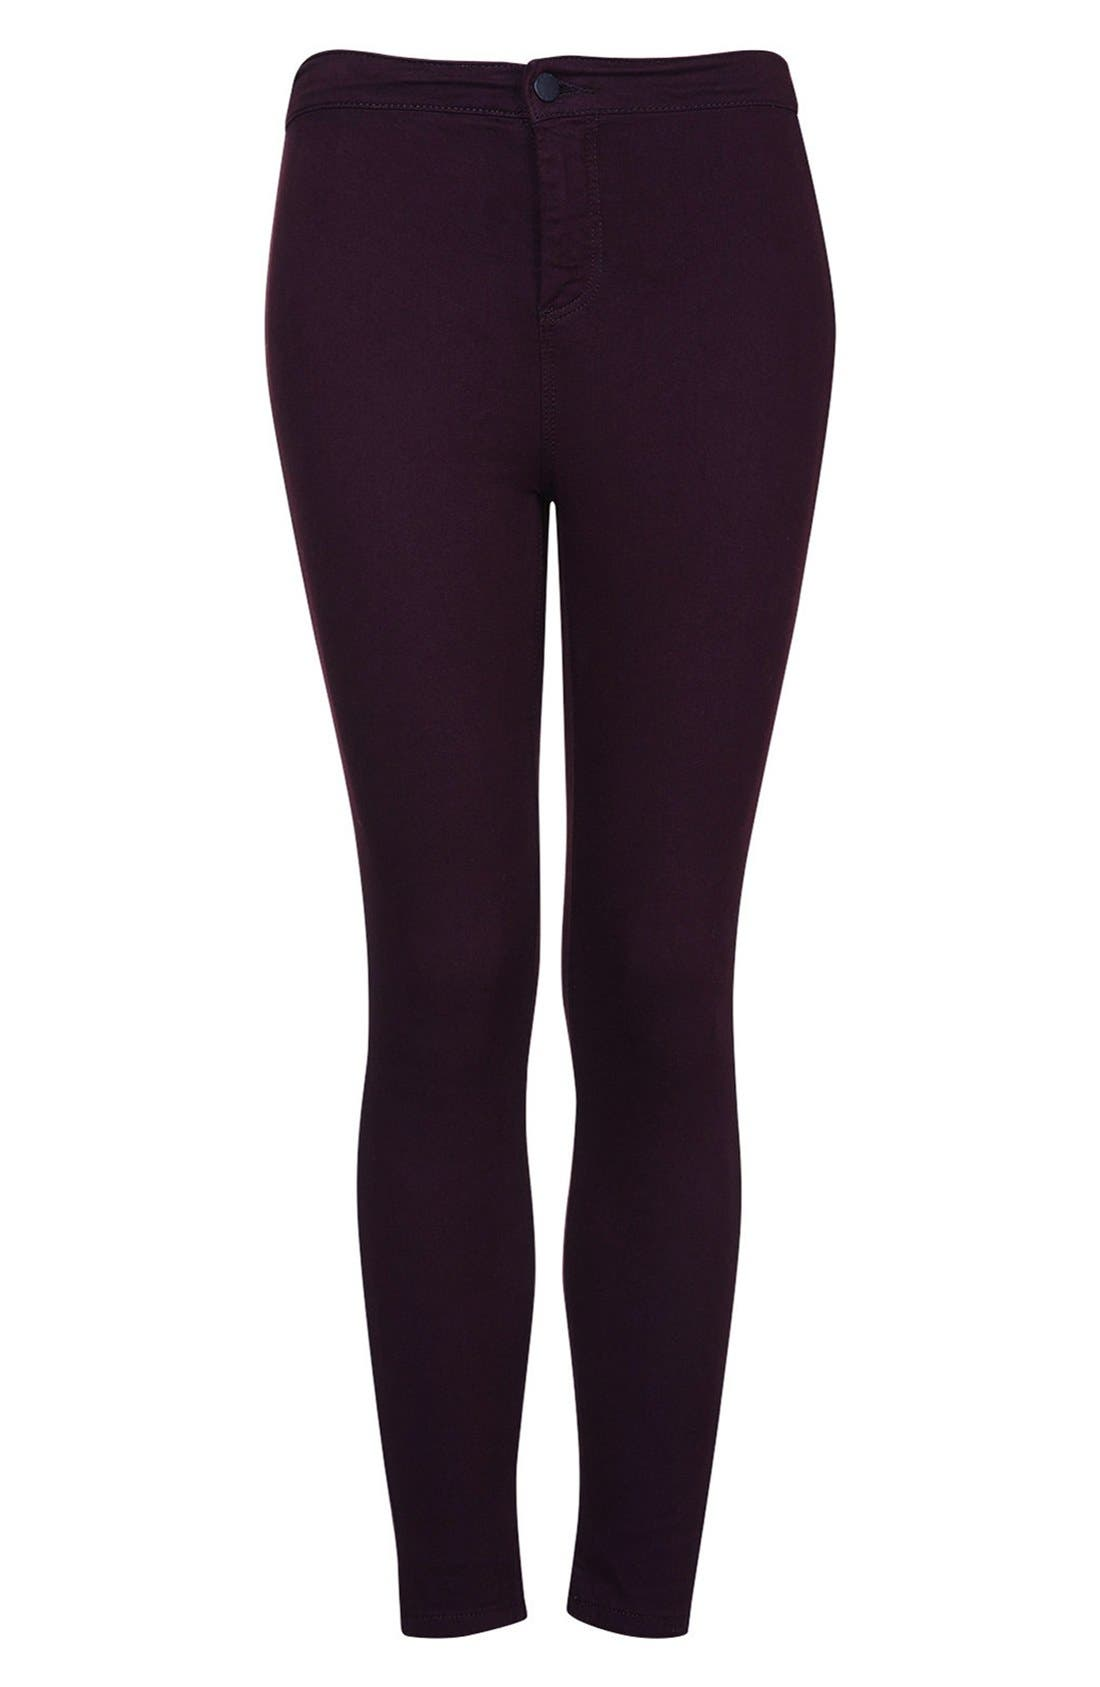 Alternate Image 3  - Topshop Moto 'Joni' High Rise Skinny Jeans (Purple) (Petite)